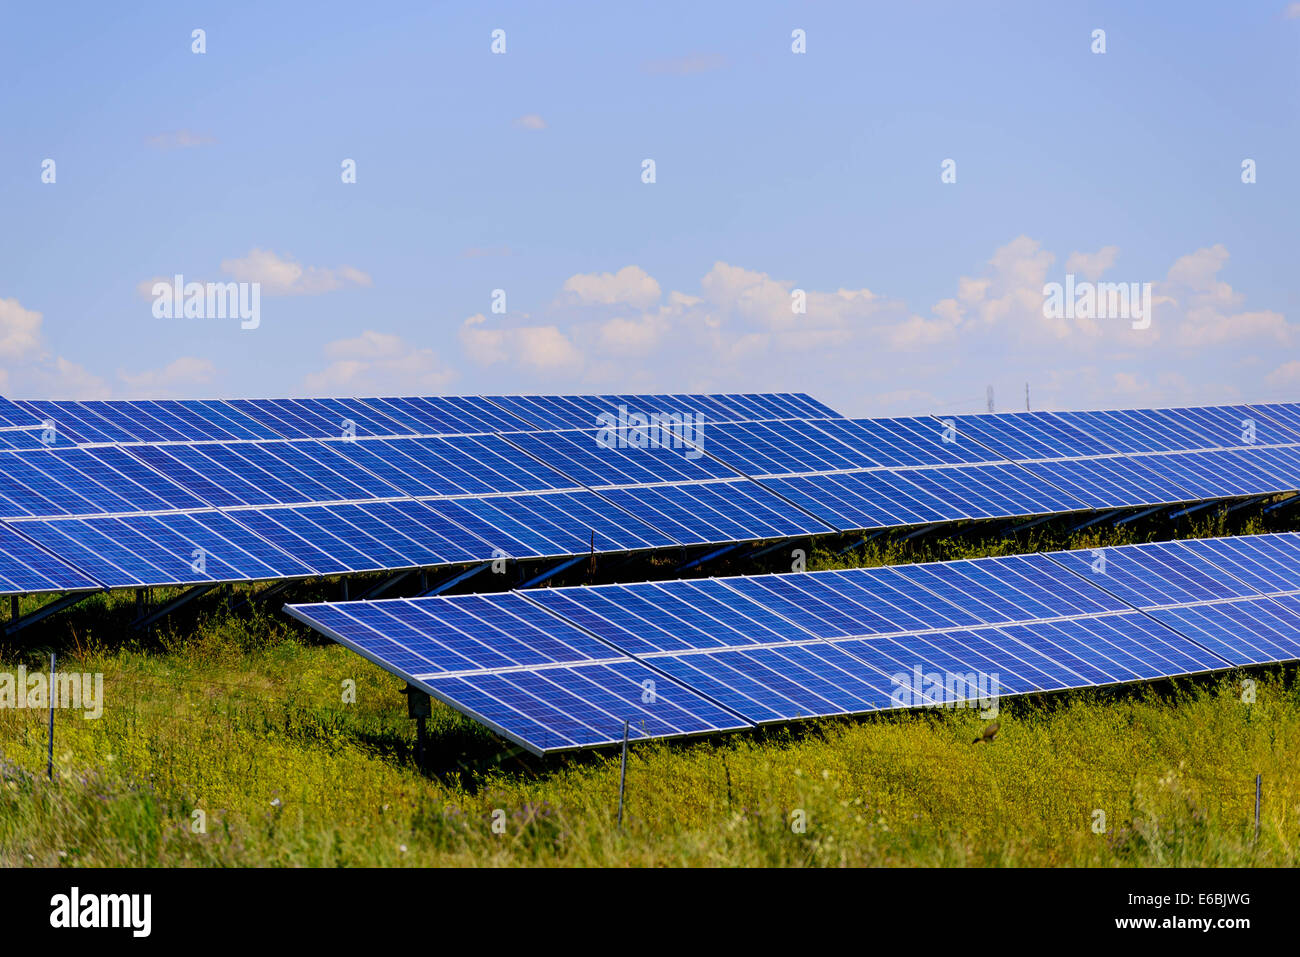 ground solar panels in a field under a blue sky - Stock Image